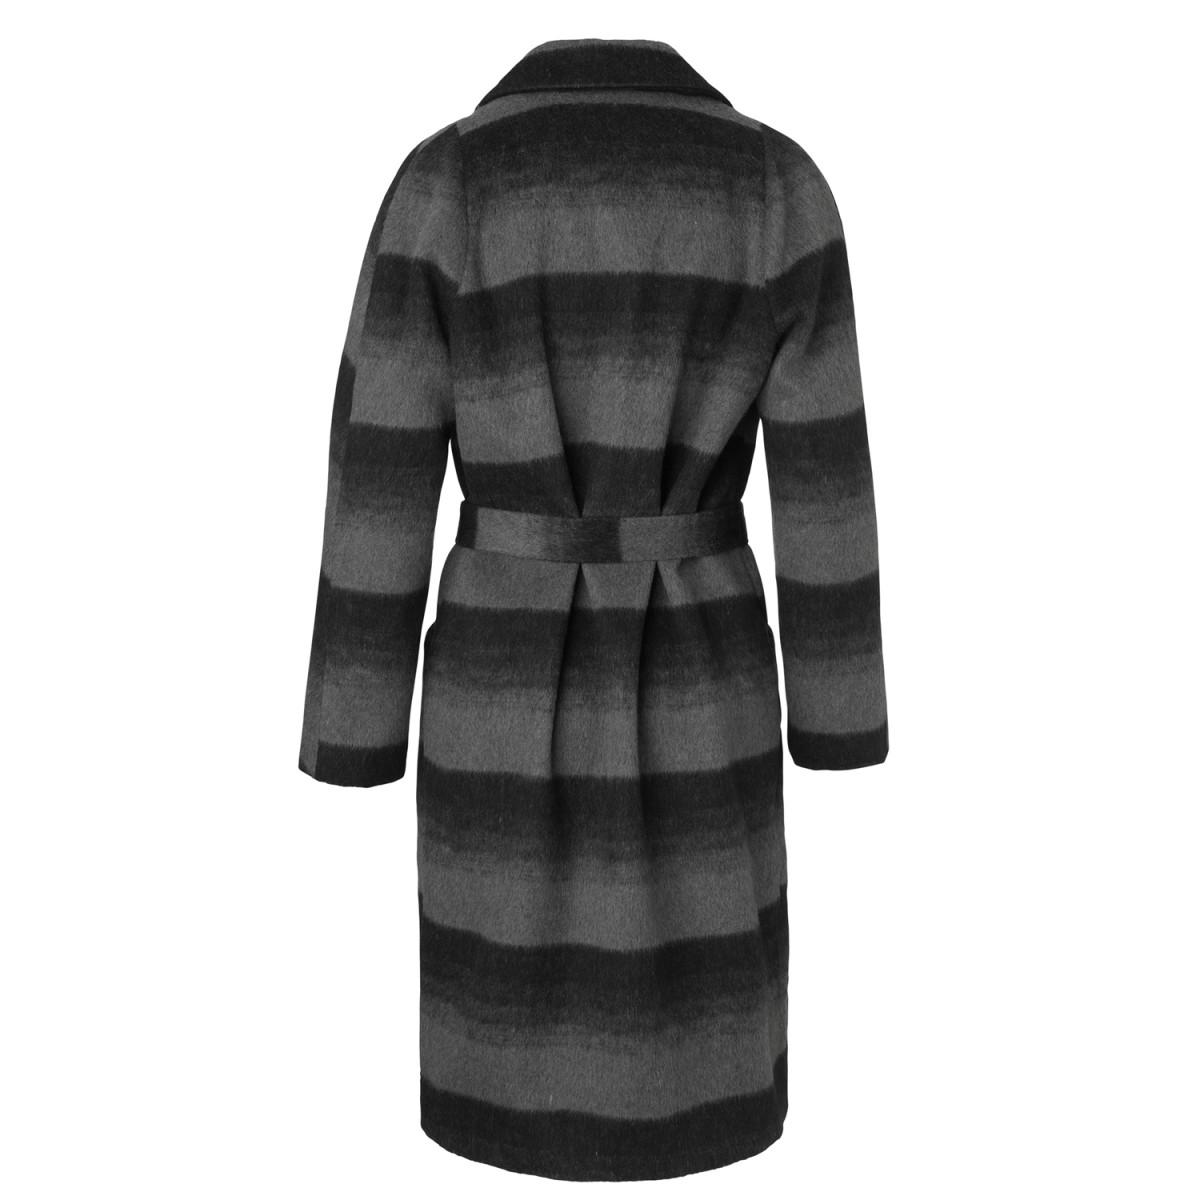 Rosemunde 9025-3019 Coat Black Grey Blend-35